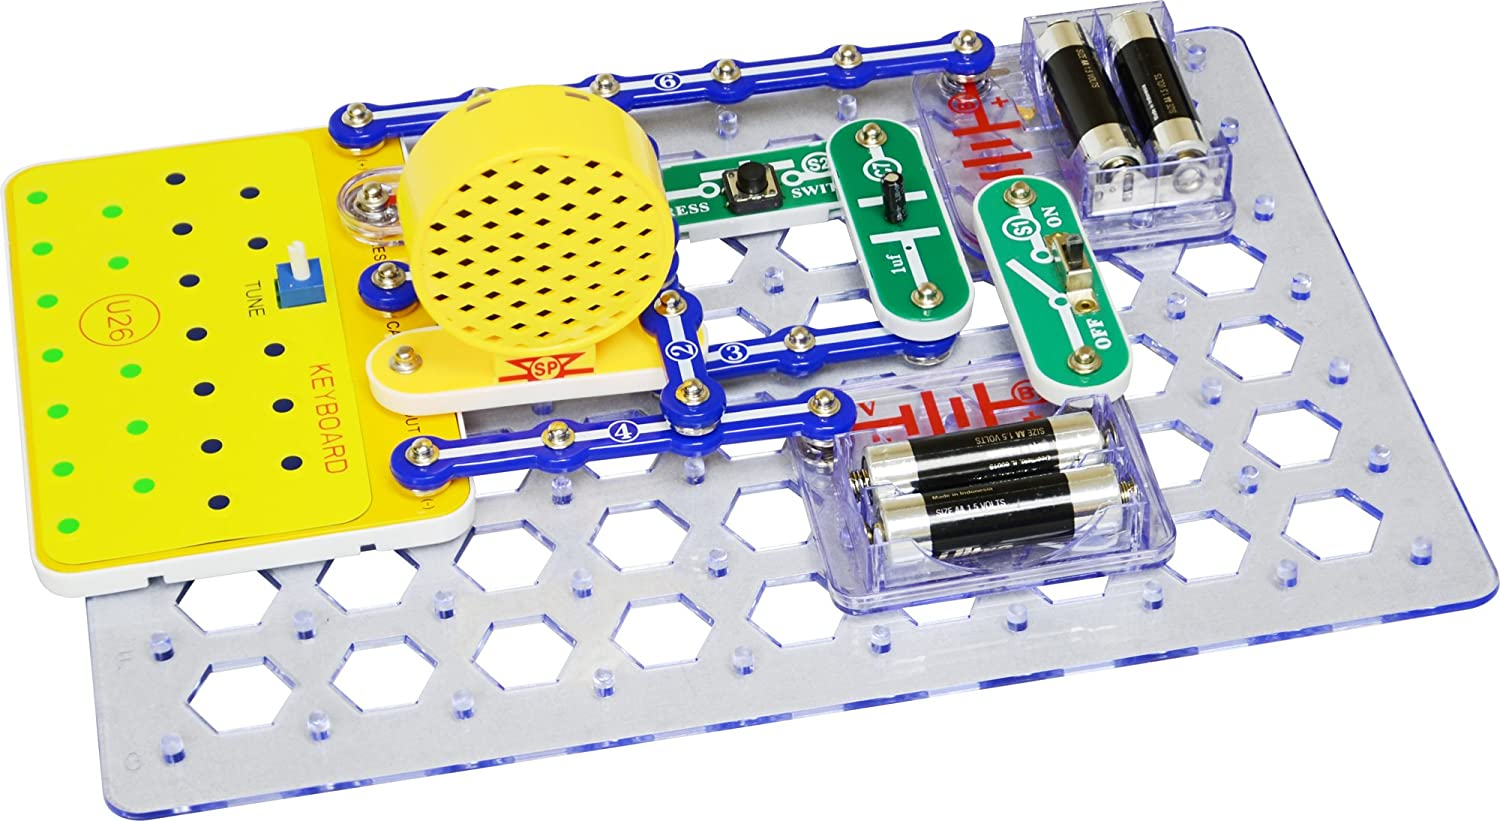 Snap Circuits Sound Electronics Discovery Kit Toys Games Elenco Electrical Project Kid Educational